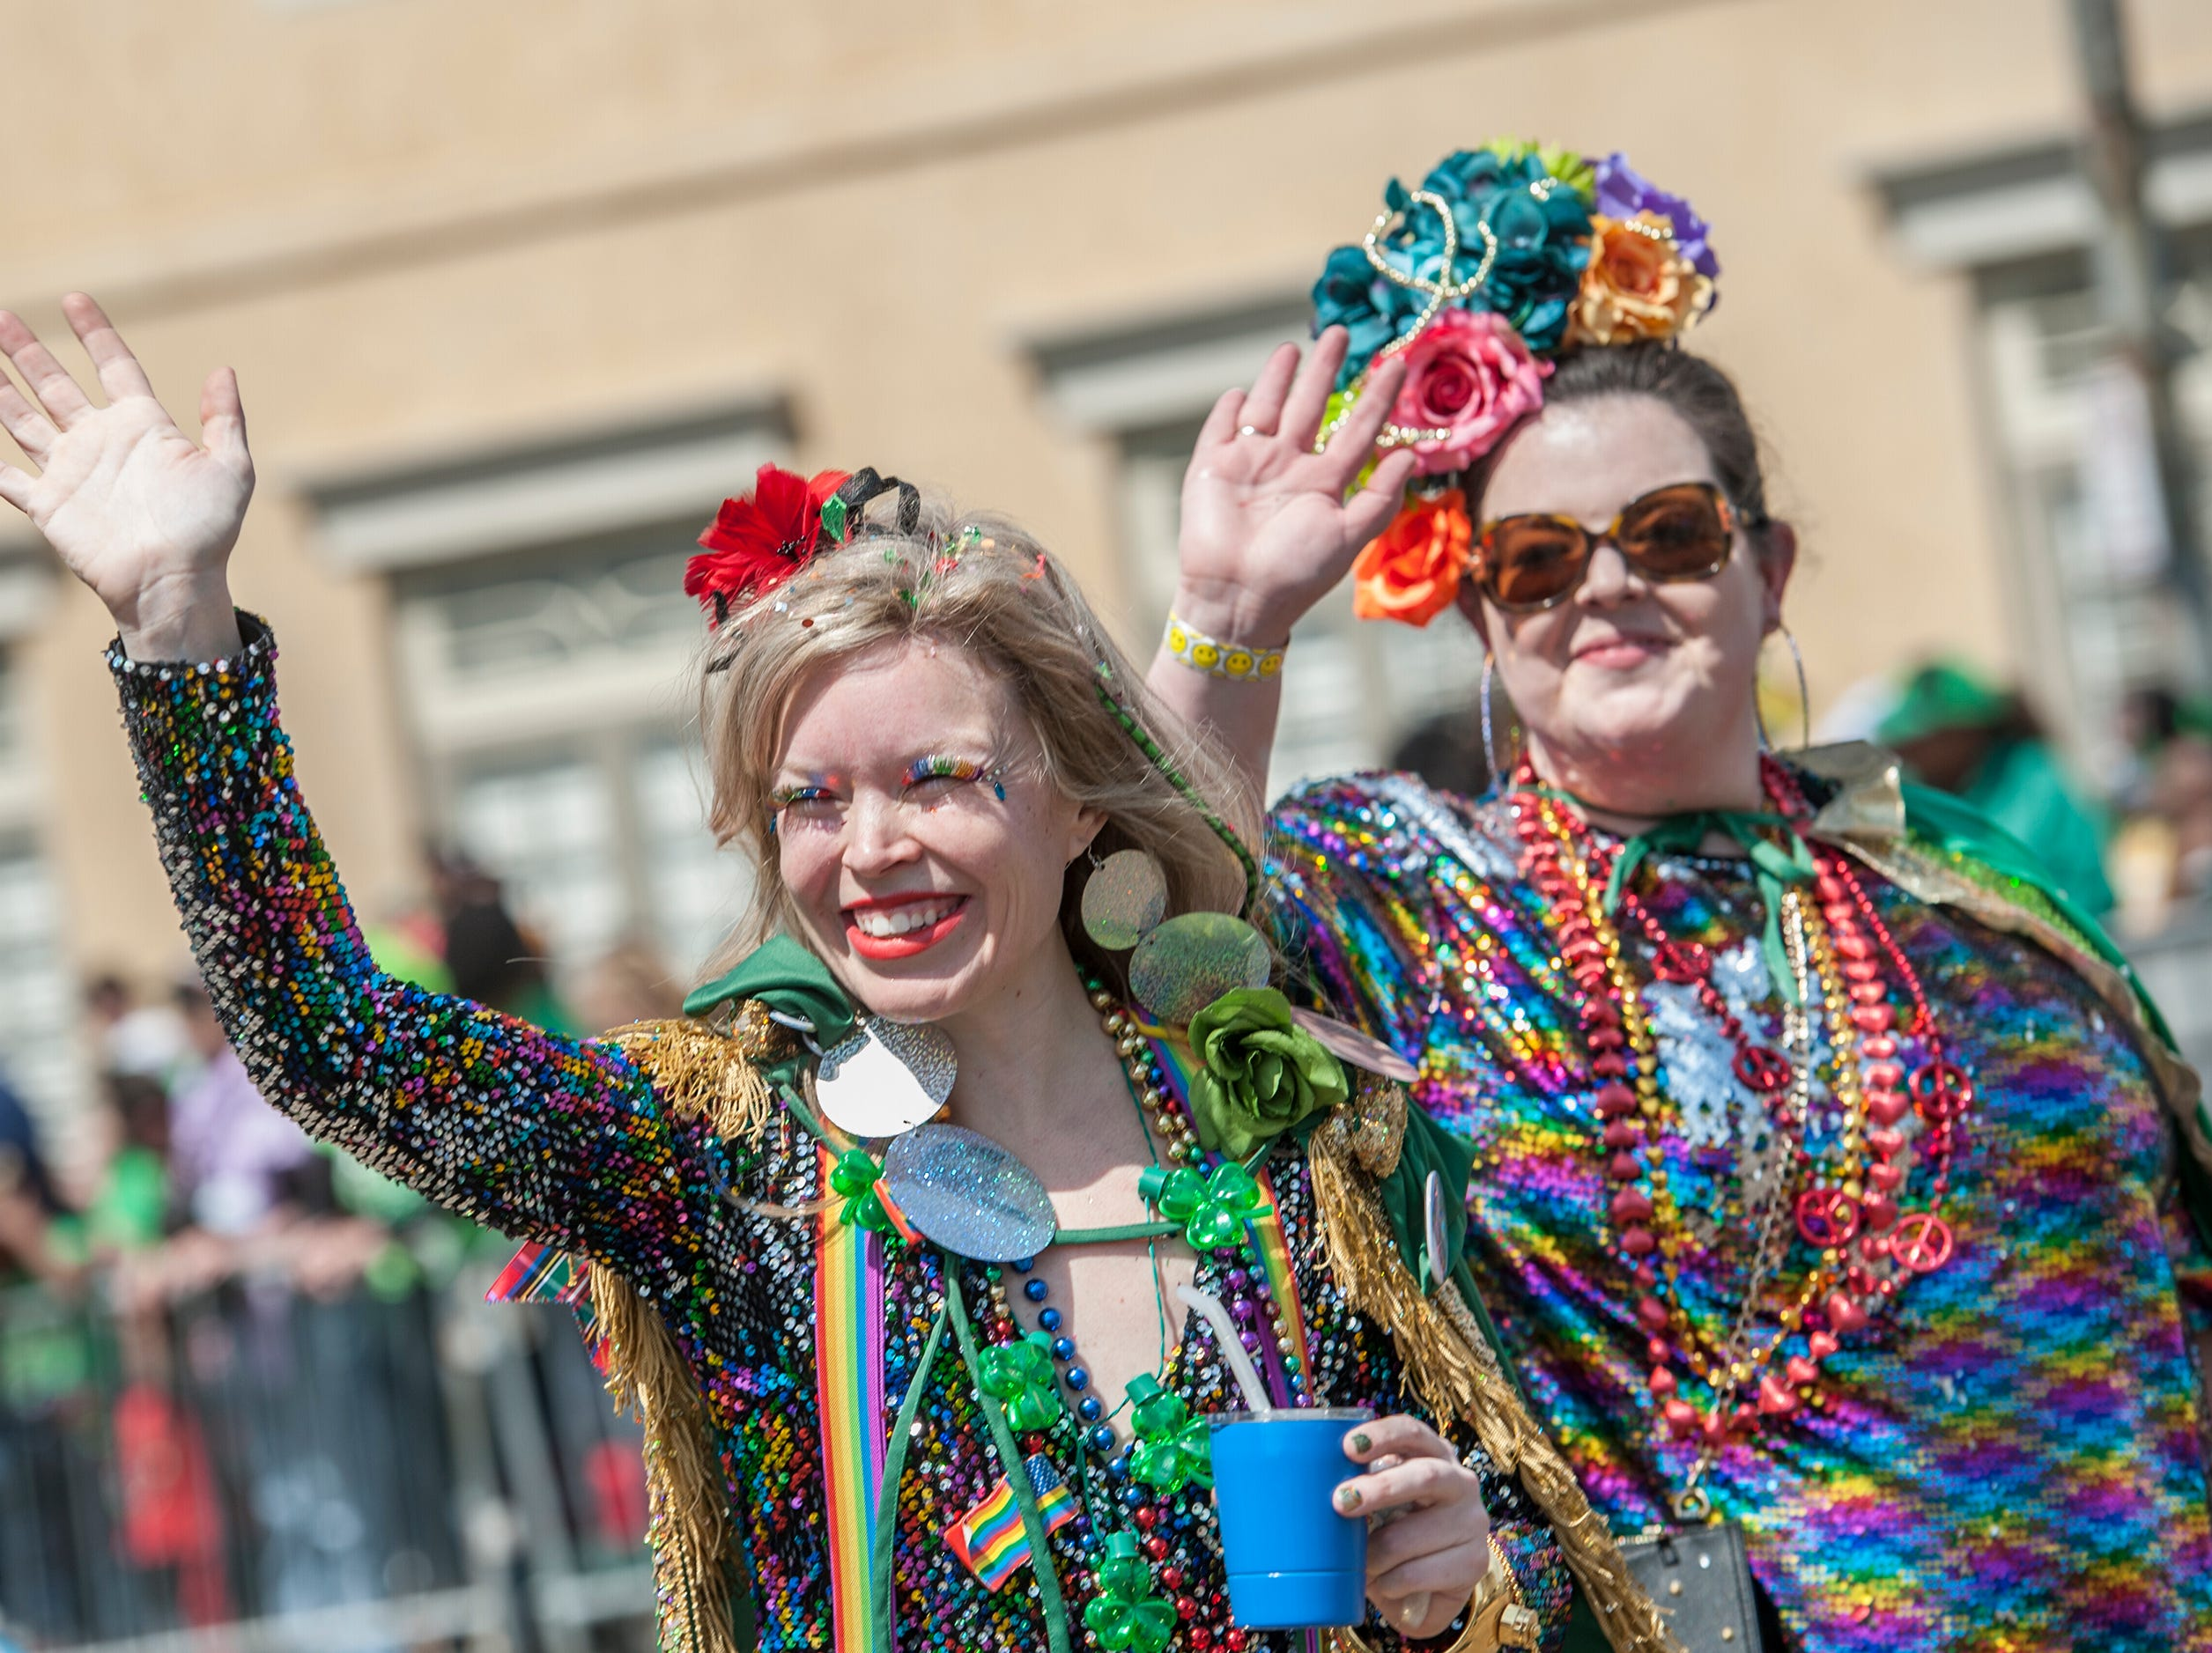 Wannabes Mary Etta Carner, left, of Clinton and Emily Routh of Jackson, with the Nugget League, march in Hal's St. Paddy's Day Parade in Jackson, Saturday, March 23, 2019.